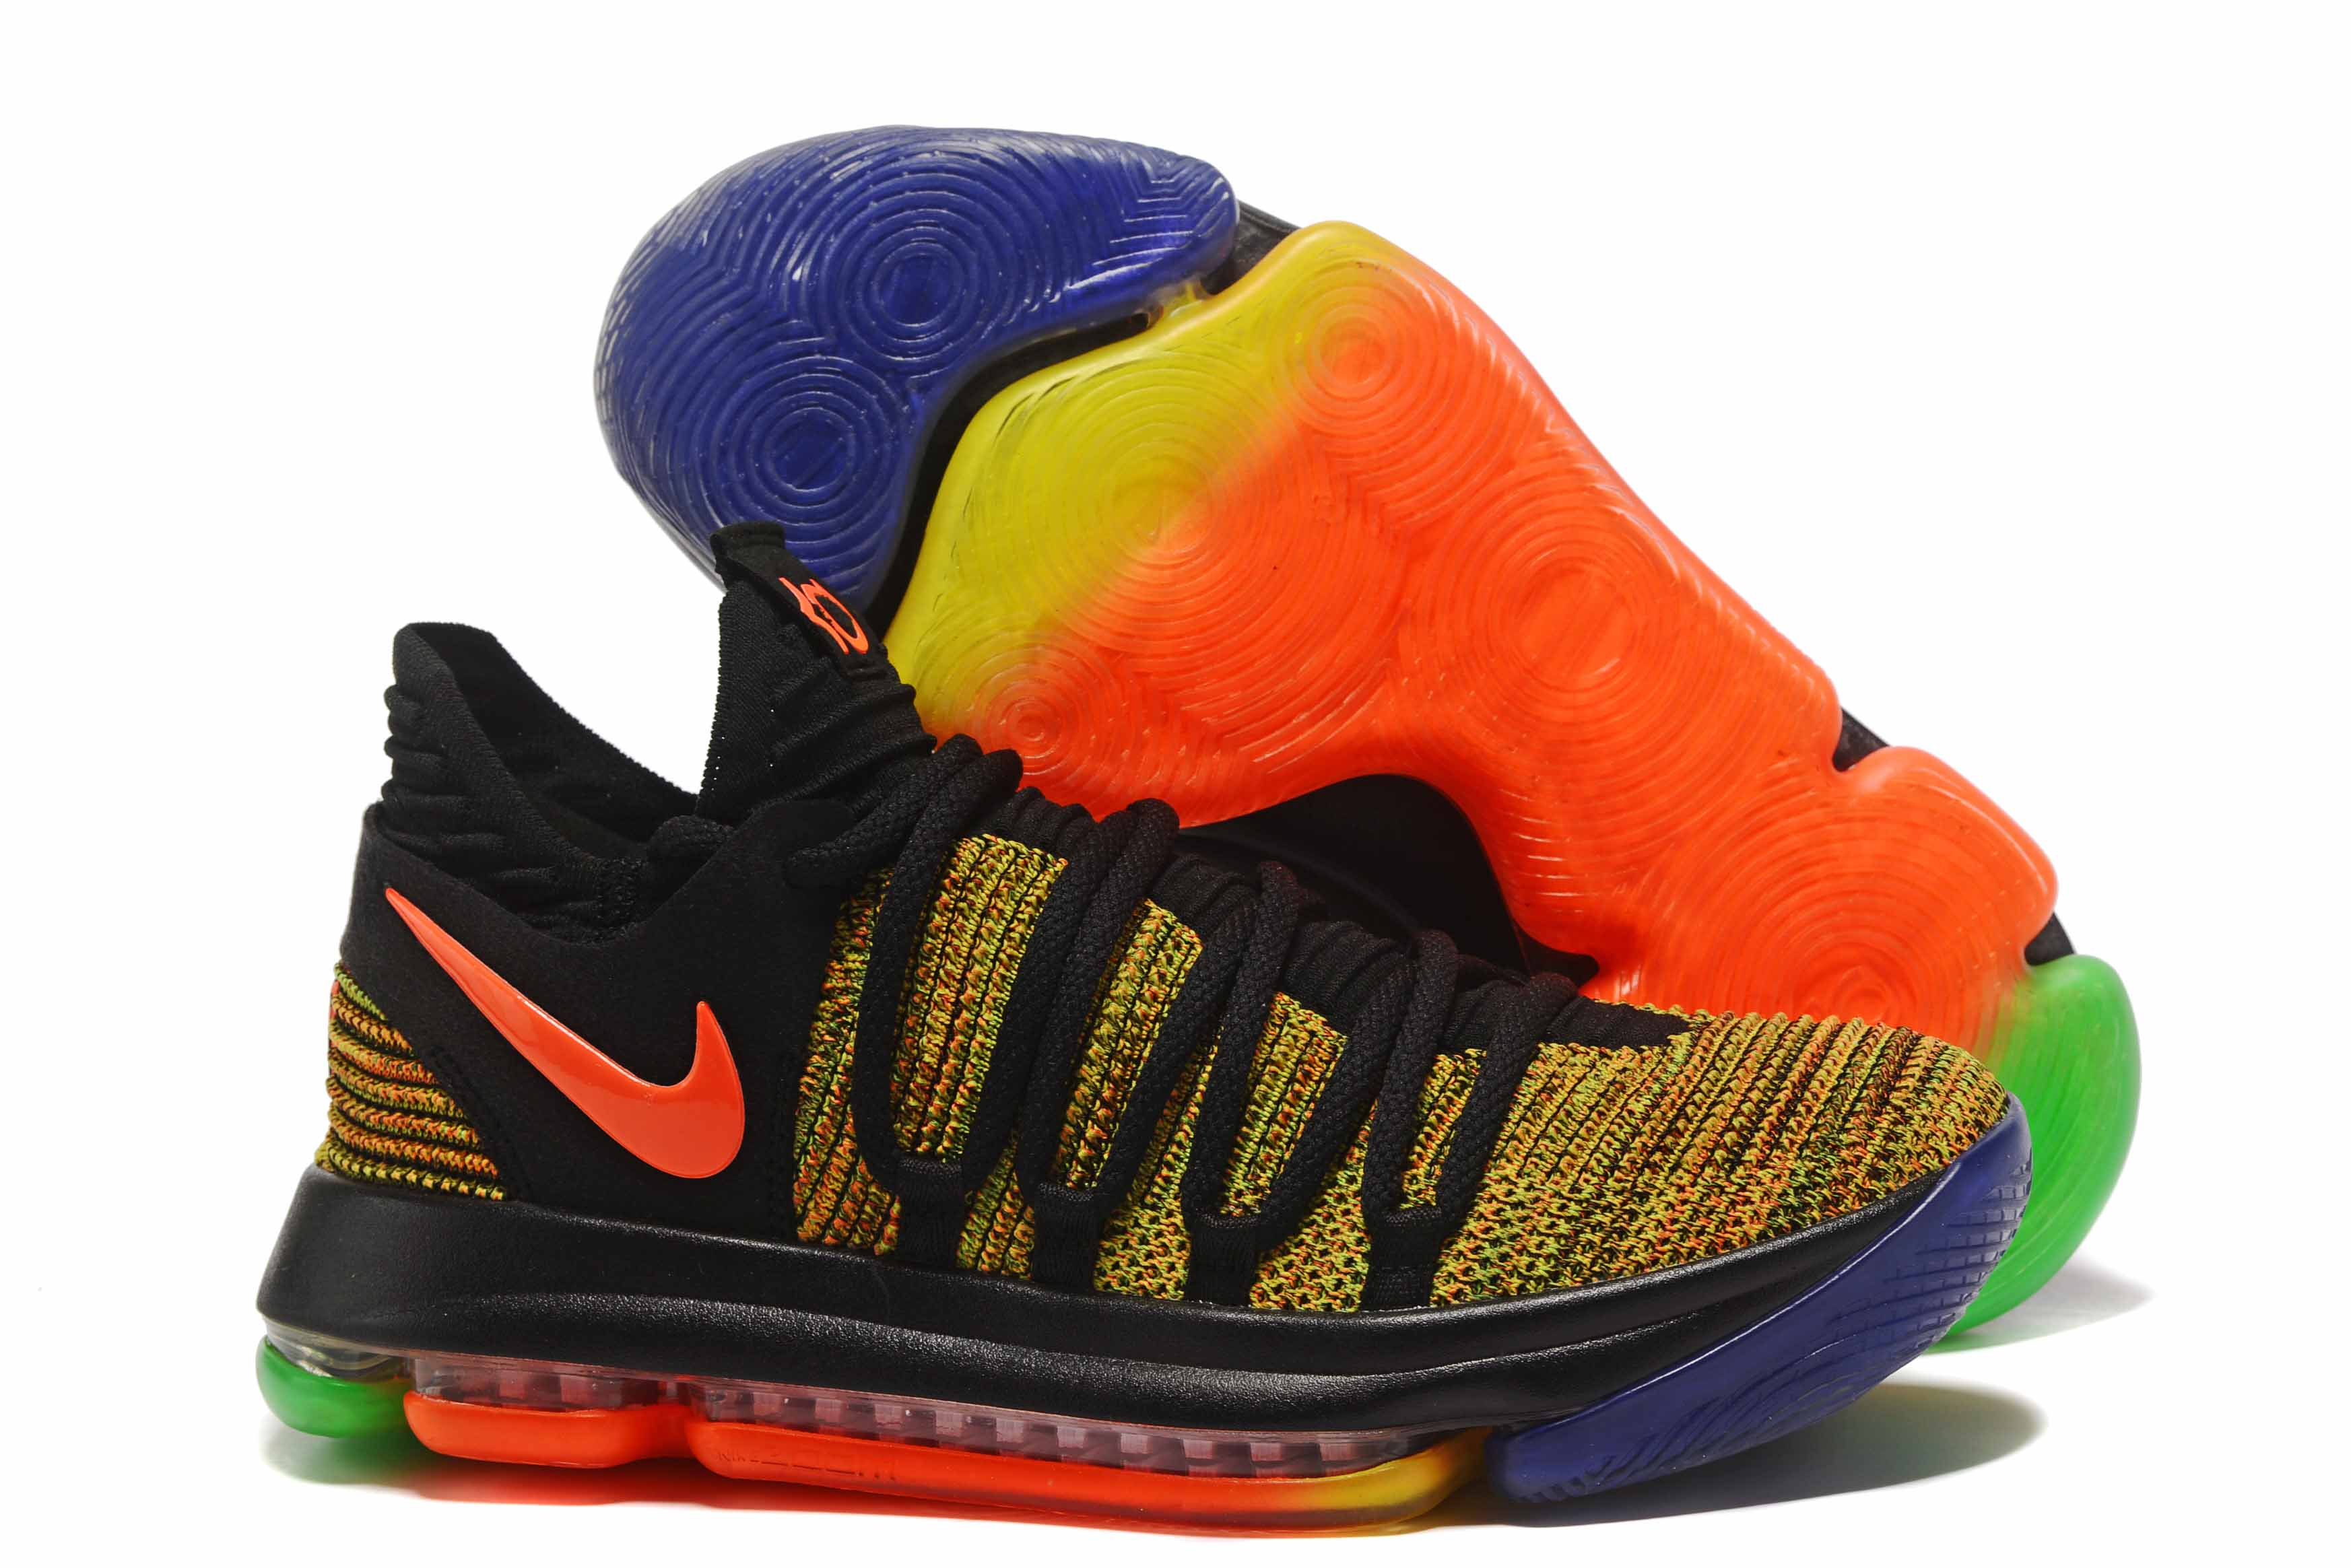 af7134d1c4b Cheap Nike KD 10 EYBL Peach Jam Multi-Color For Sale - Cheap Nike ...